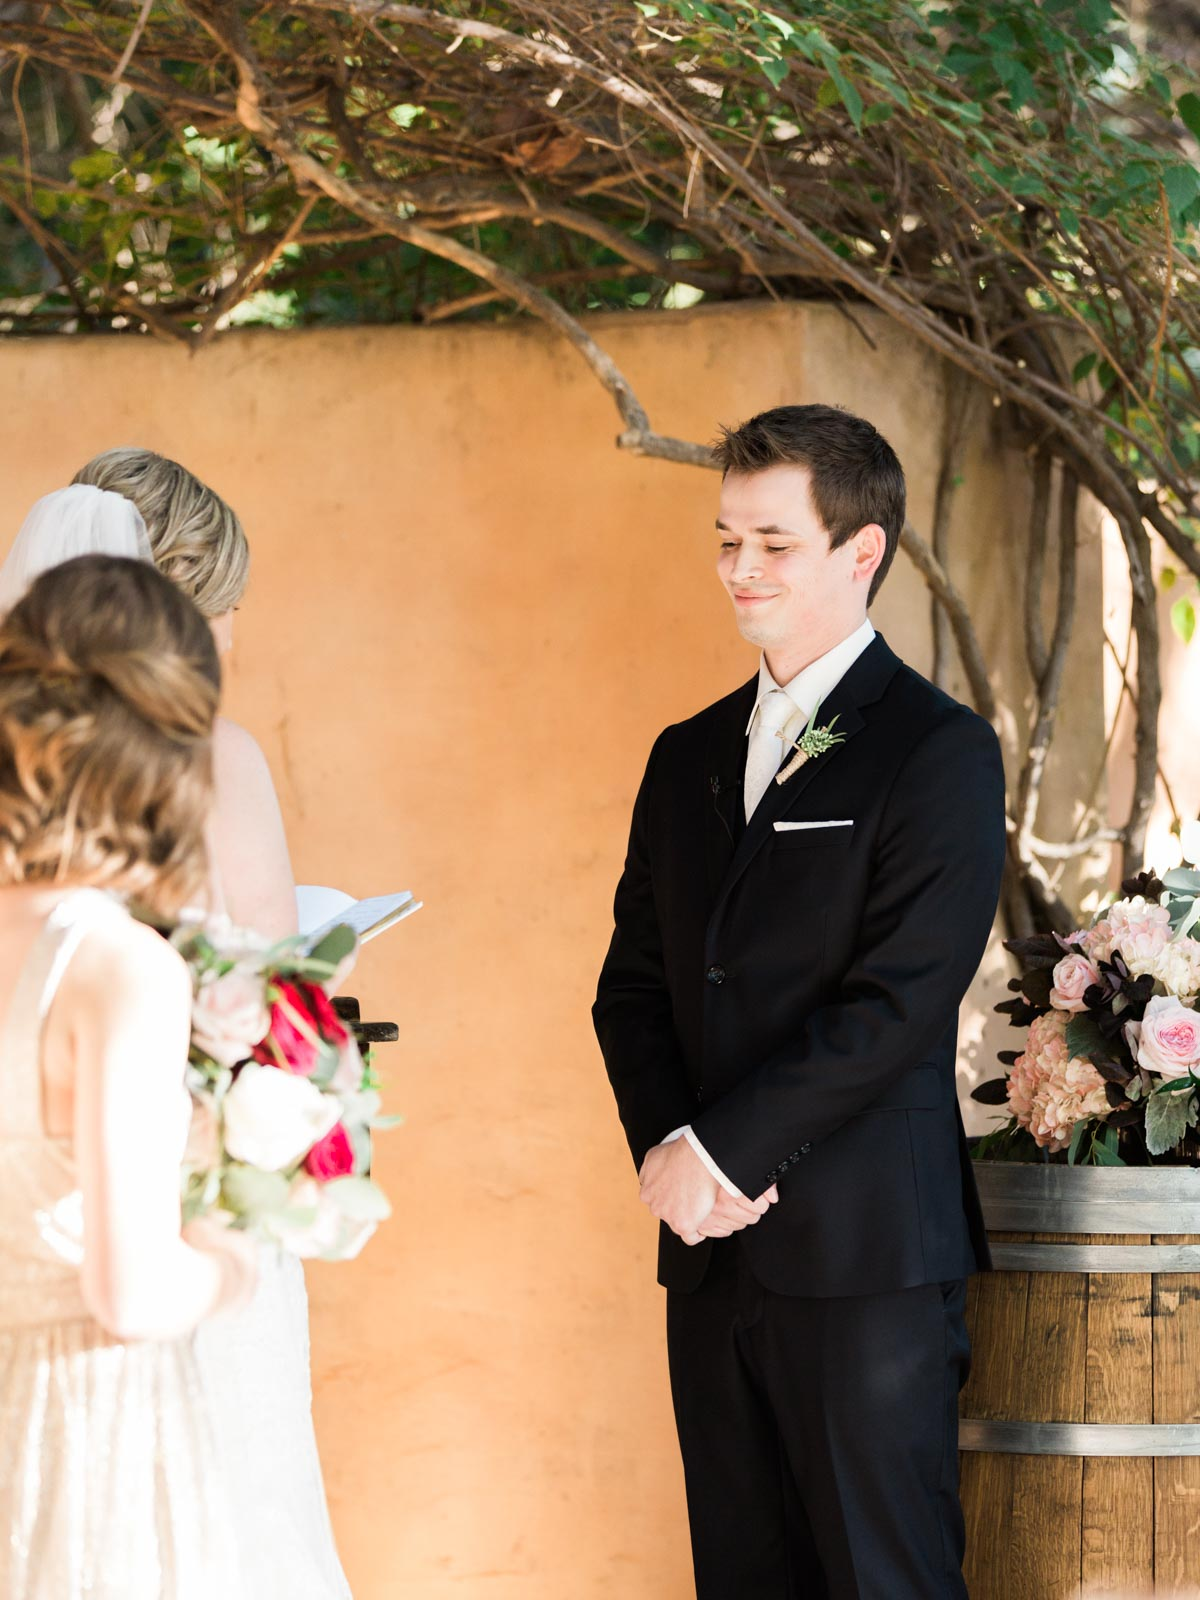 wedding-ceremony-groom-smiling.jpg